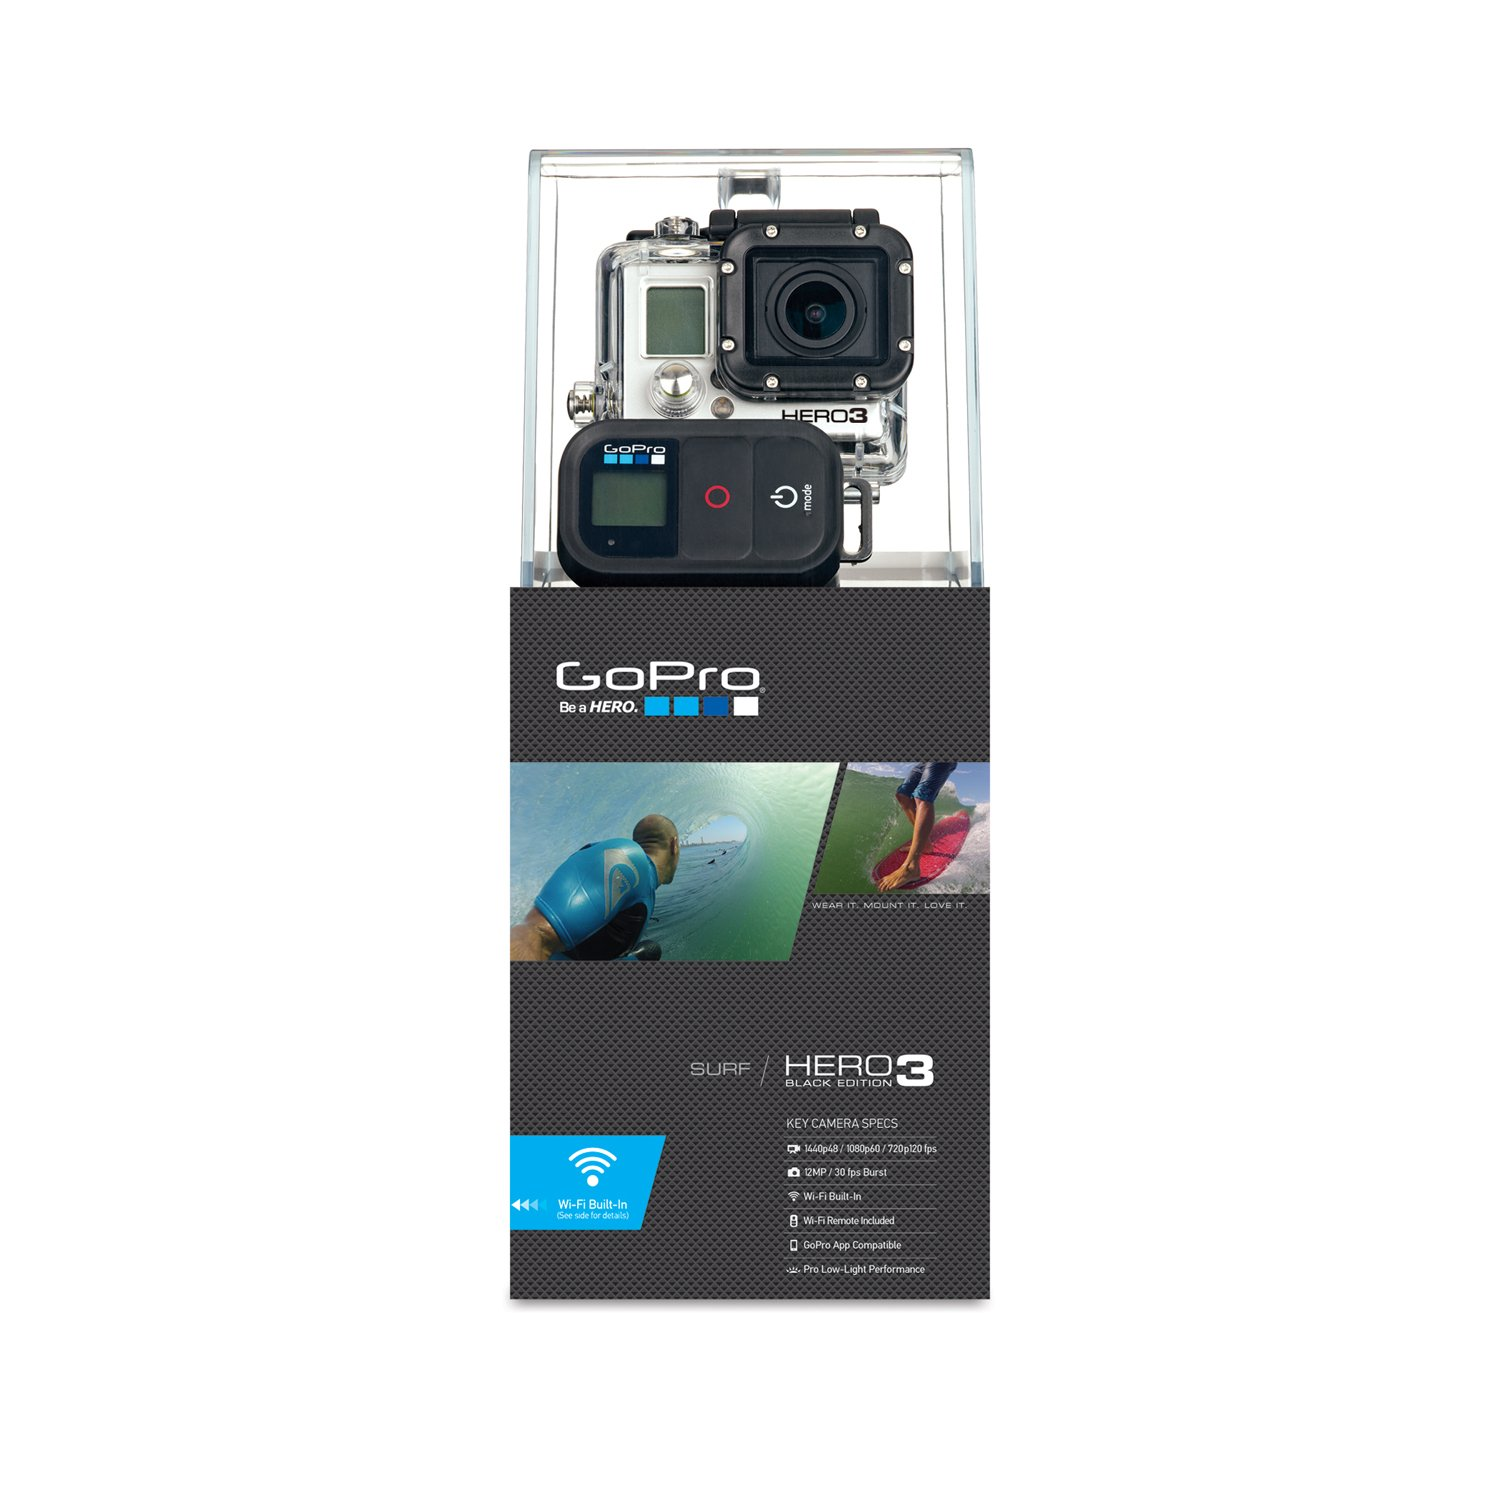 GoPro HERO3 Black: Surf Edition